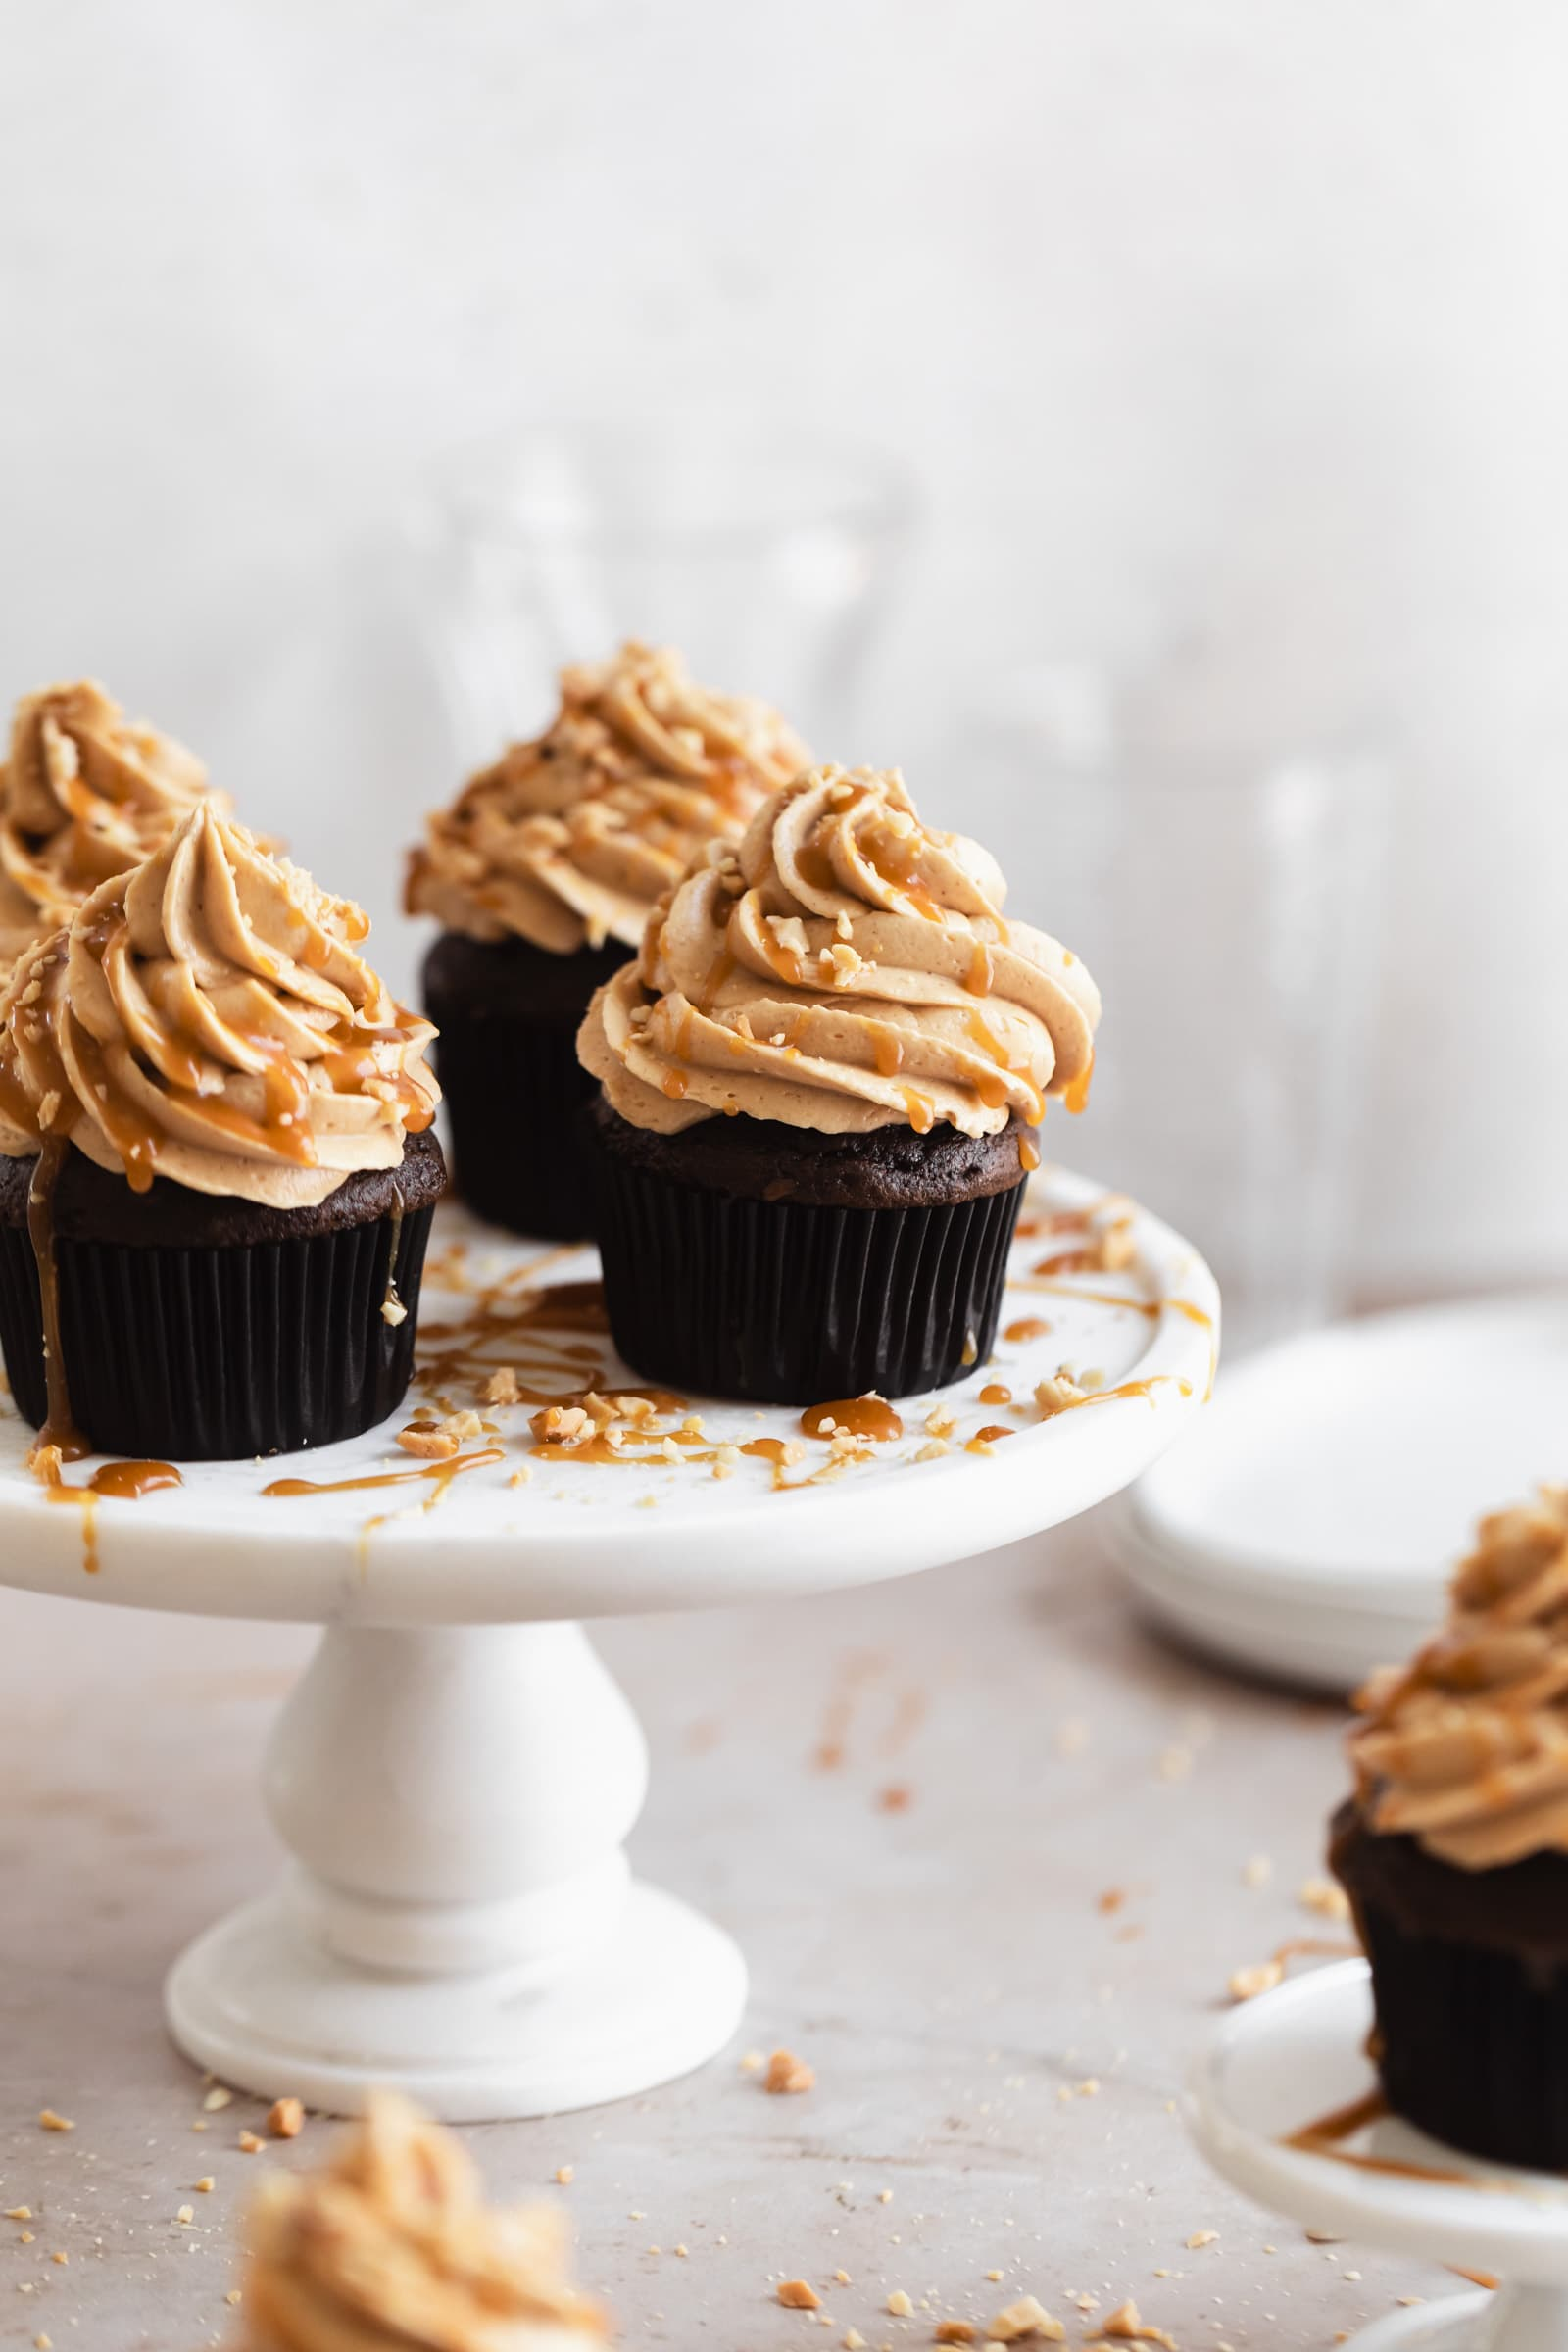 chocolate peanut butter cupcakes with caramel drizzle